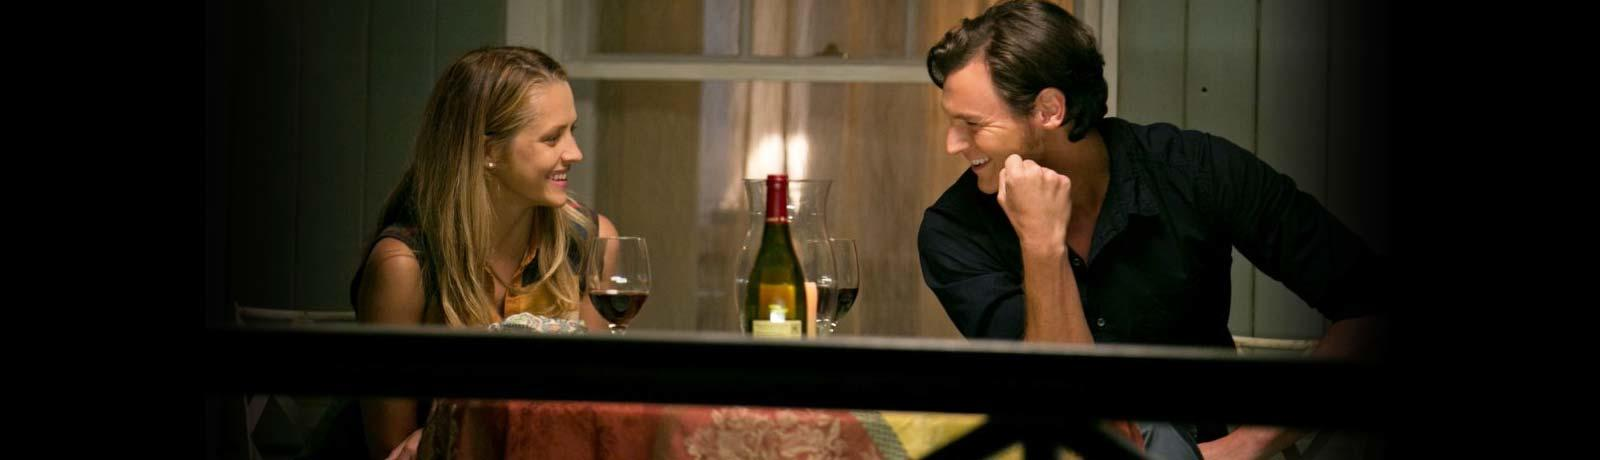 Valentine's Date Night Movies (For Grownups)